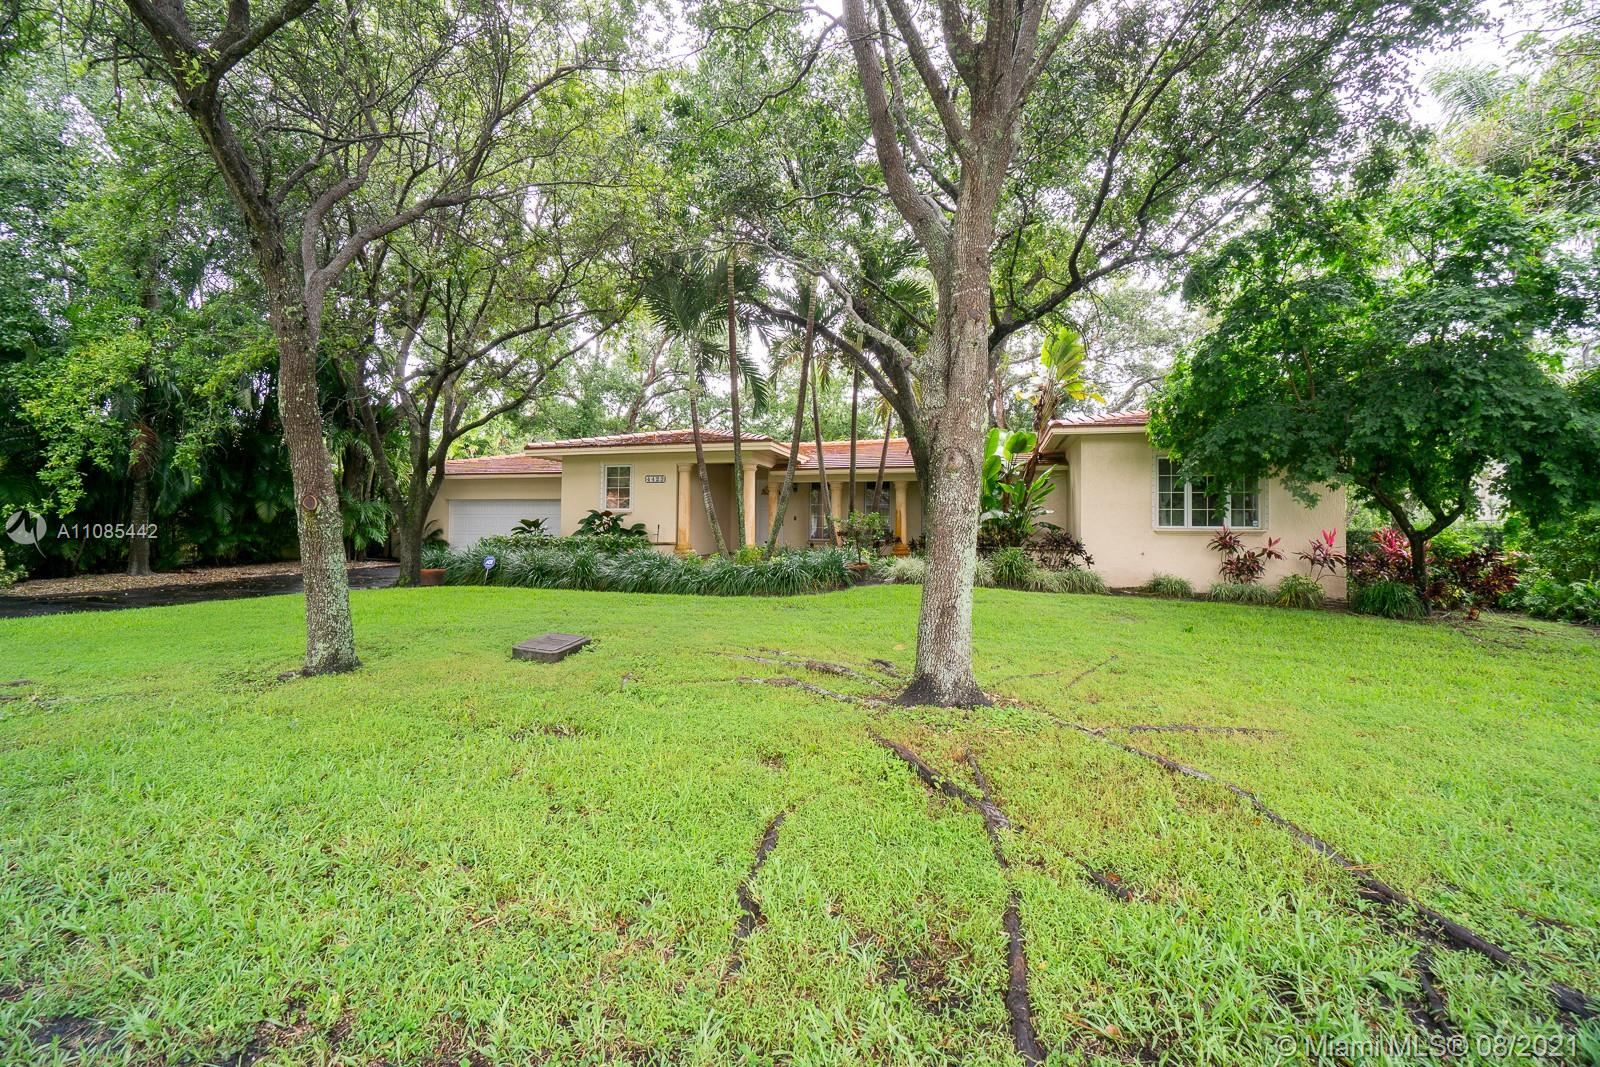 4423 Anderson Rd, Coral Gables, FL 33146 - #: A11085442